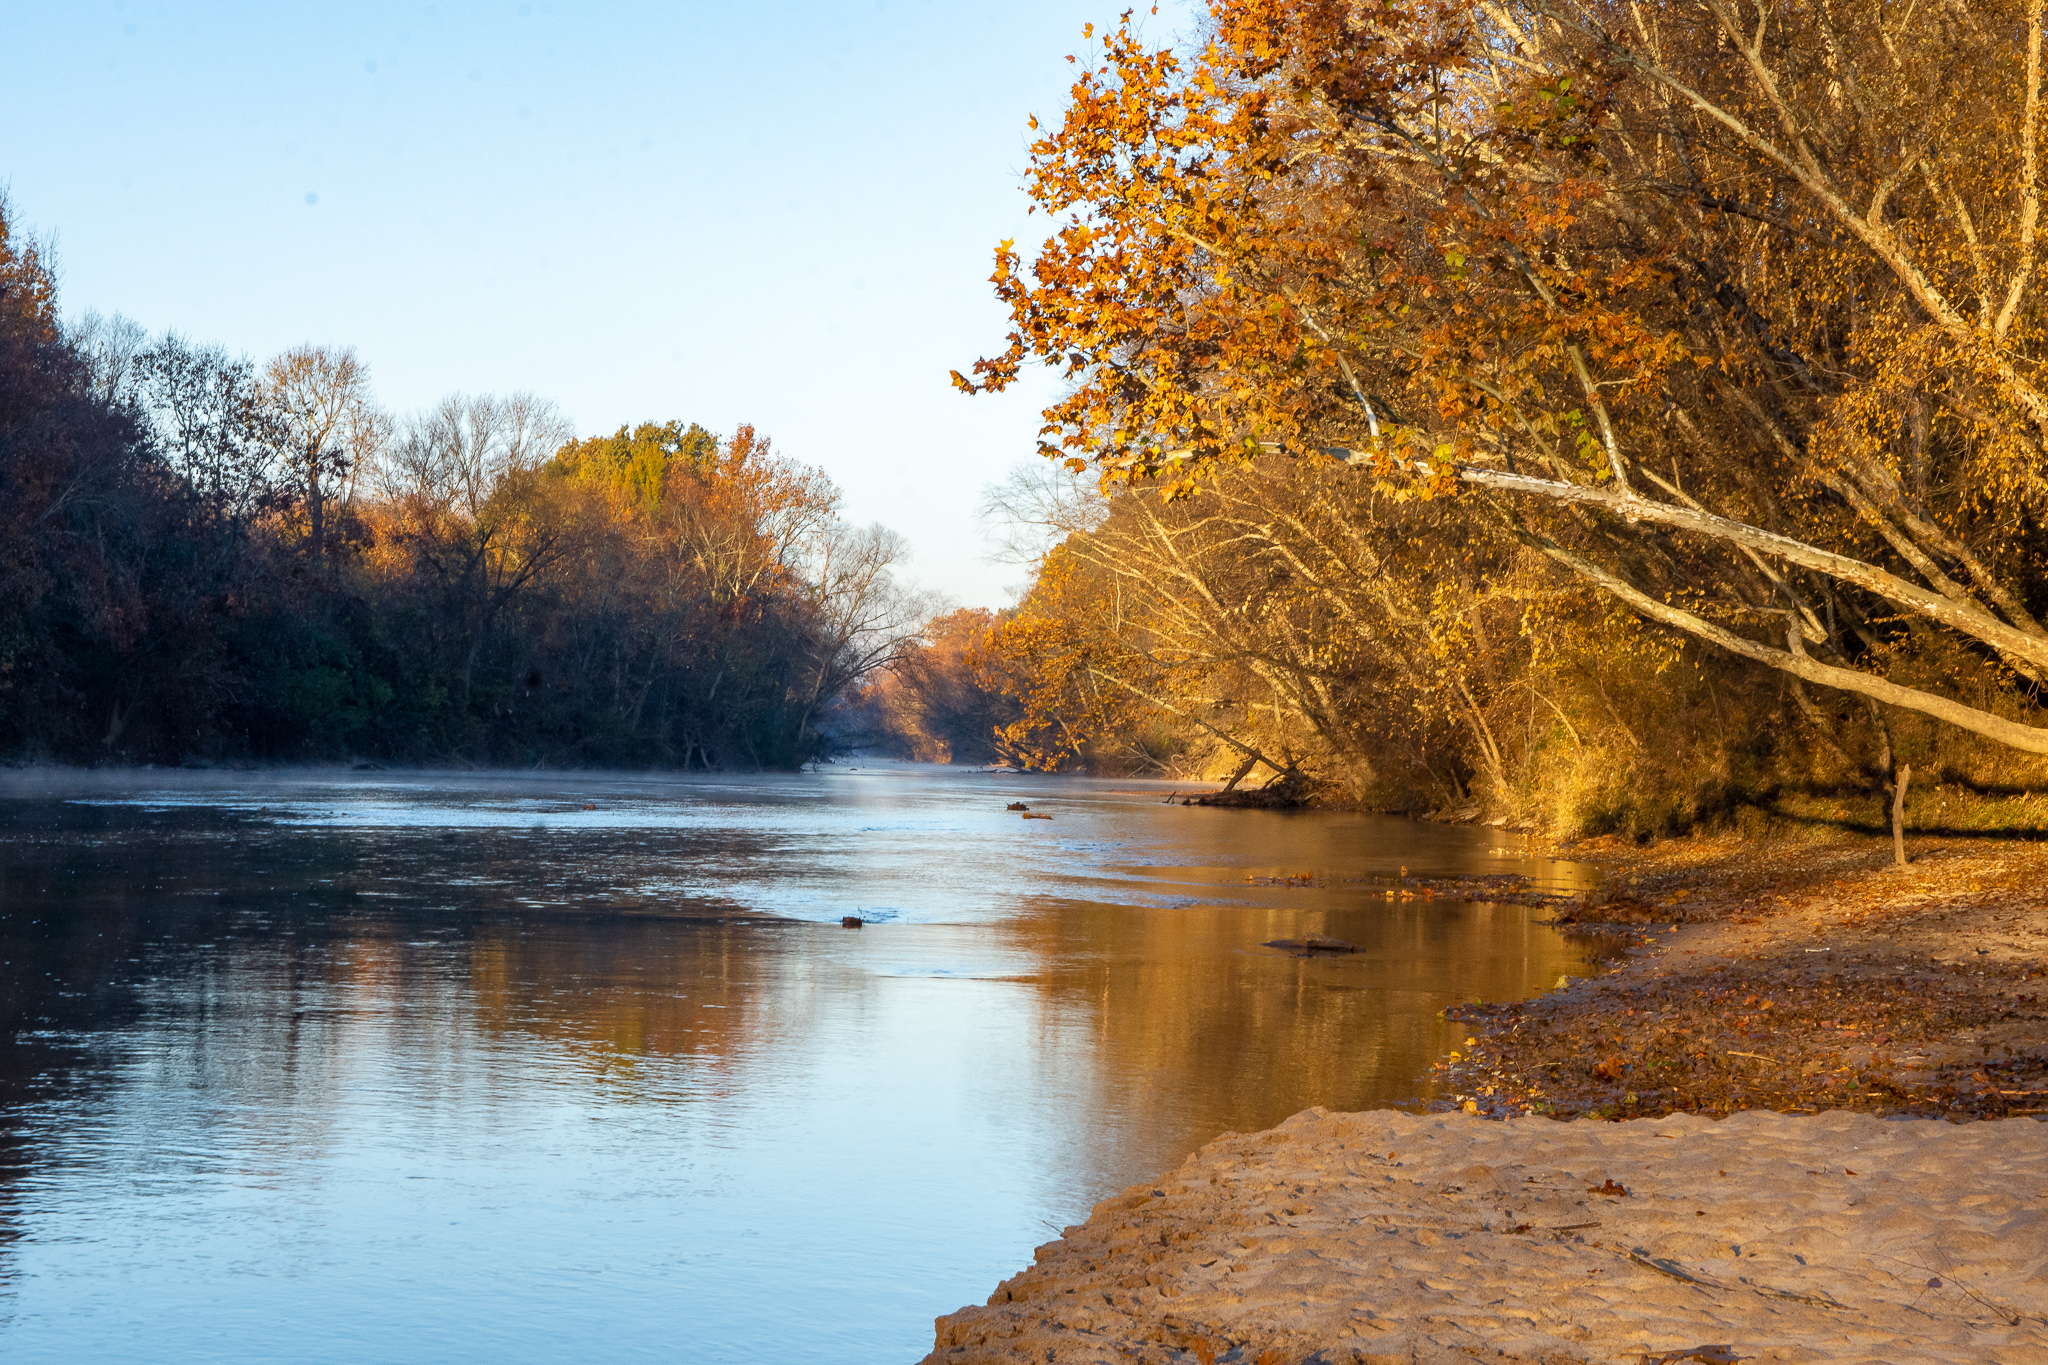 An awesome Thanksgiving morning by myself with my camera